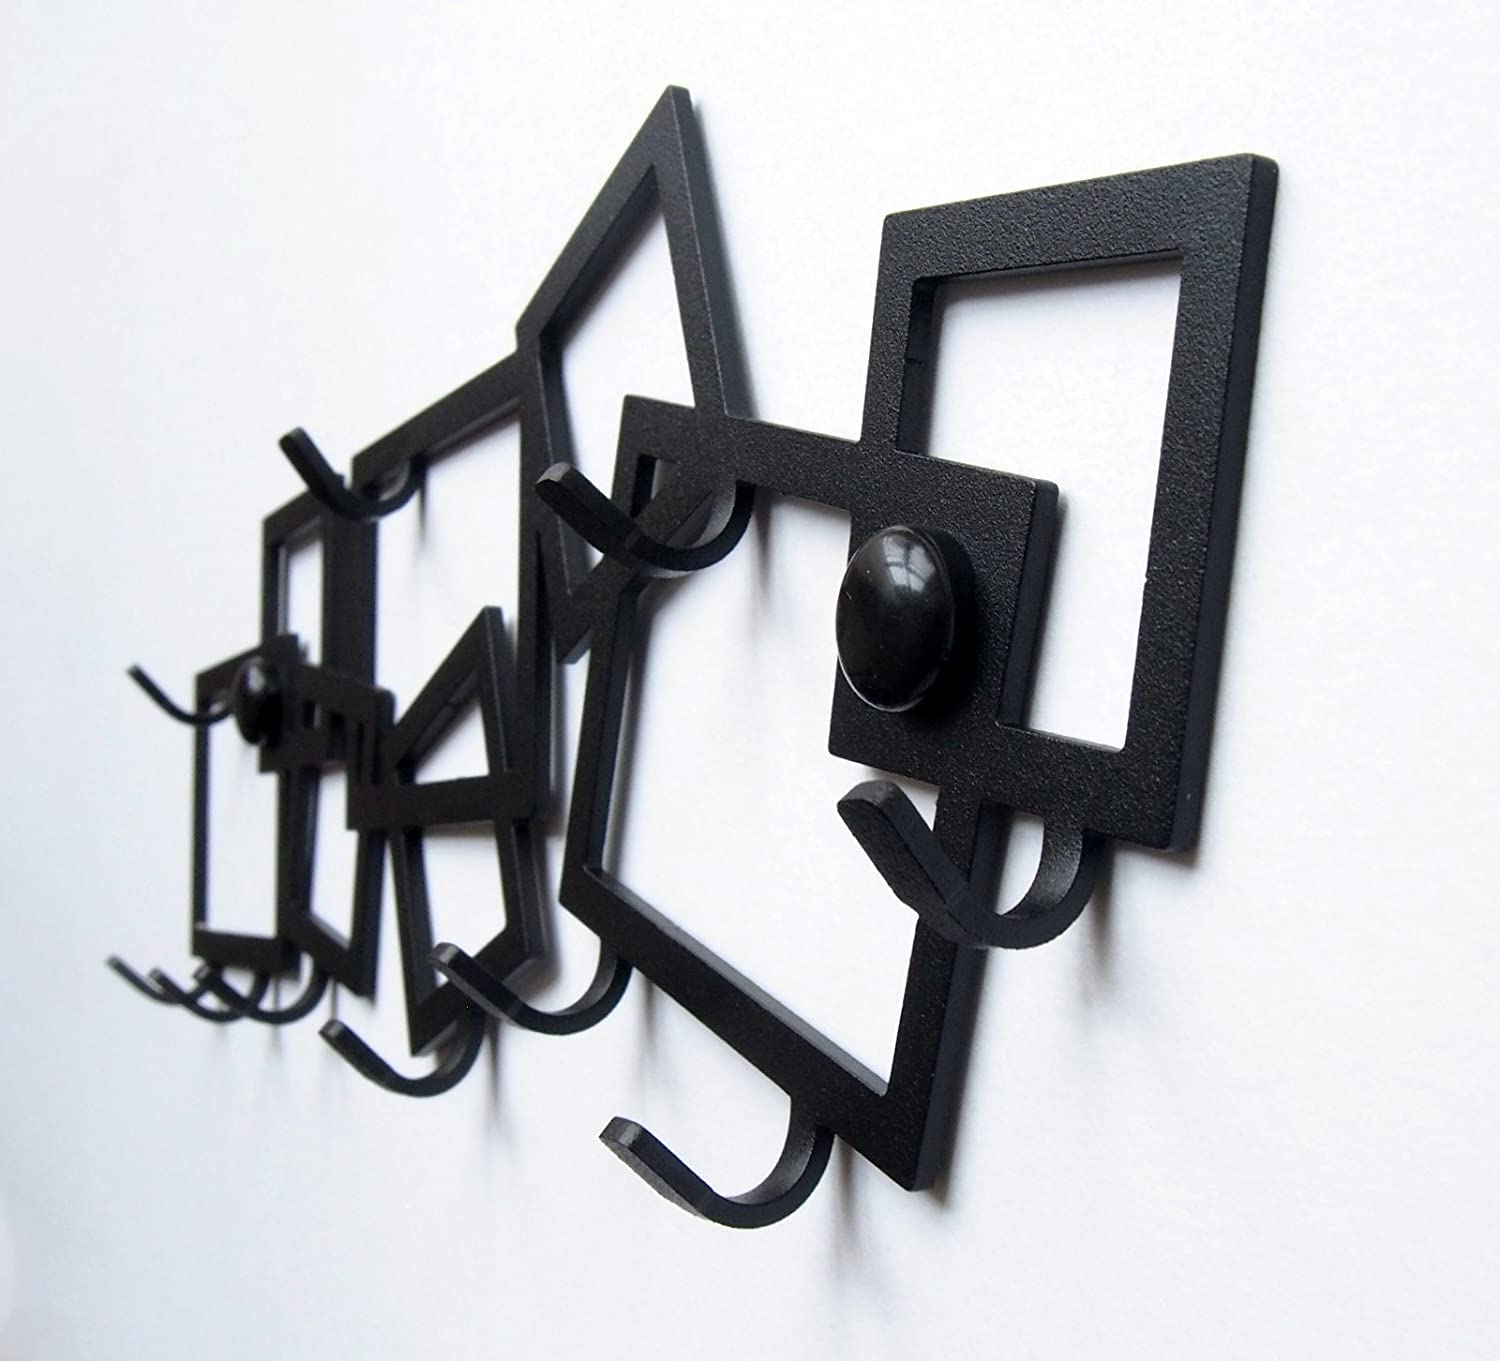 M-KeyCases Perchero Decorativo de Pared Gancho Estante para Porta Llaves Llaveros Tablero Percha Metal Colgadero Sweet Home Garaje Cocina Key Hanger ...